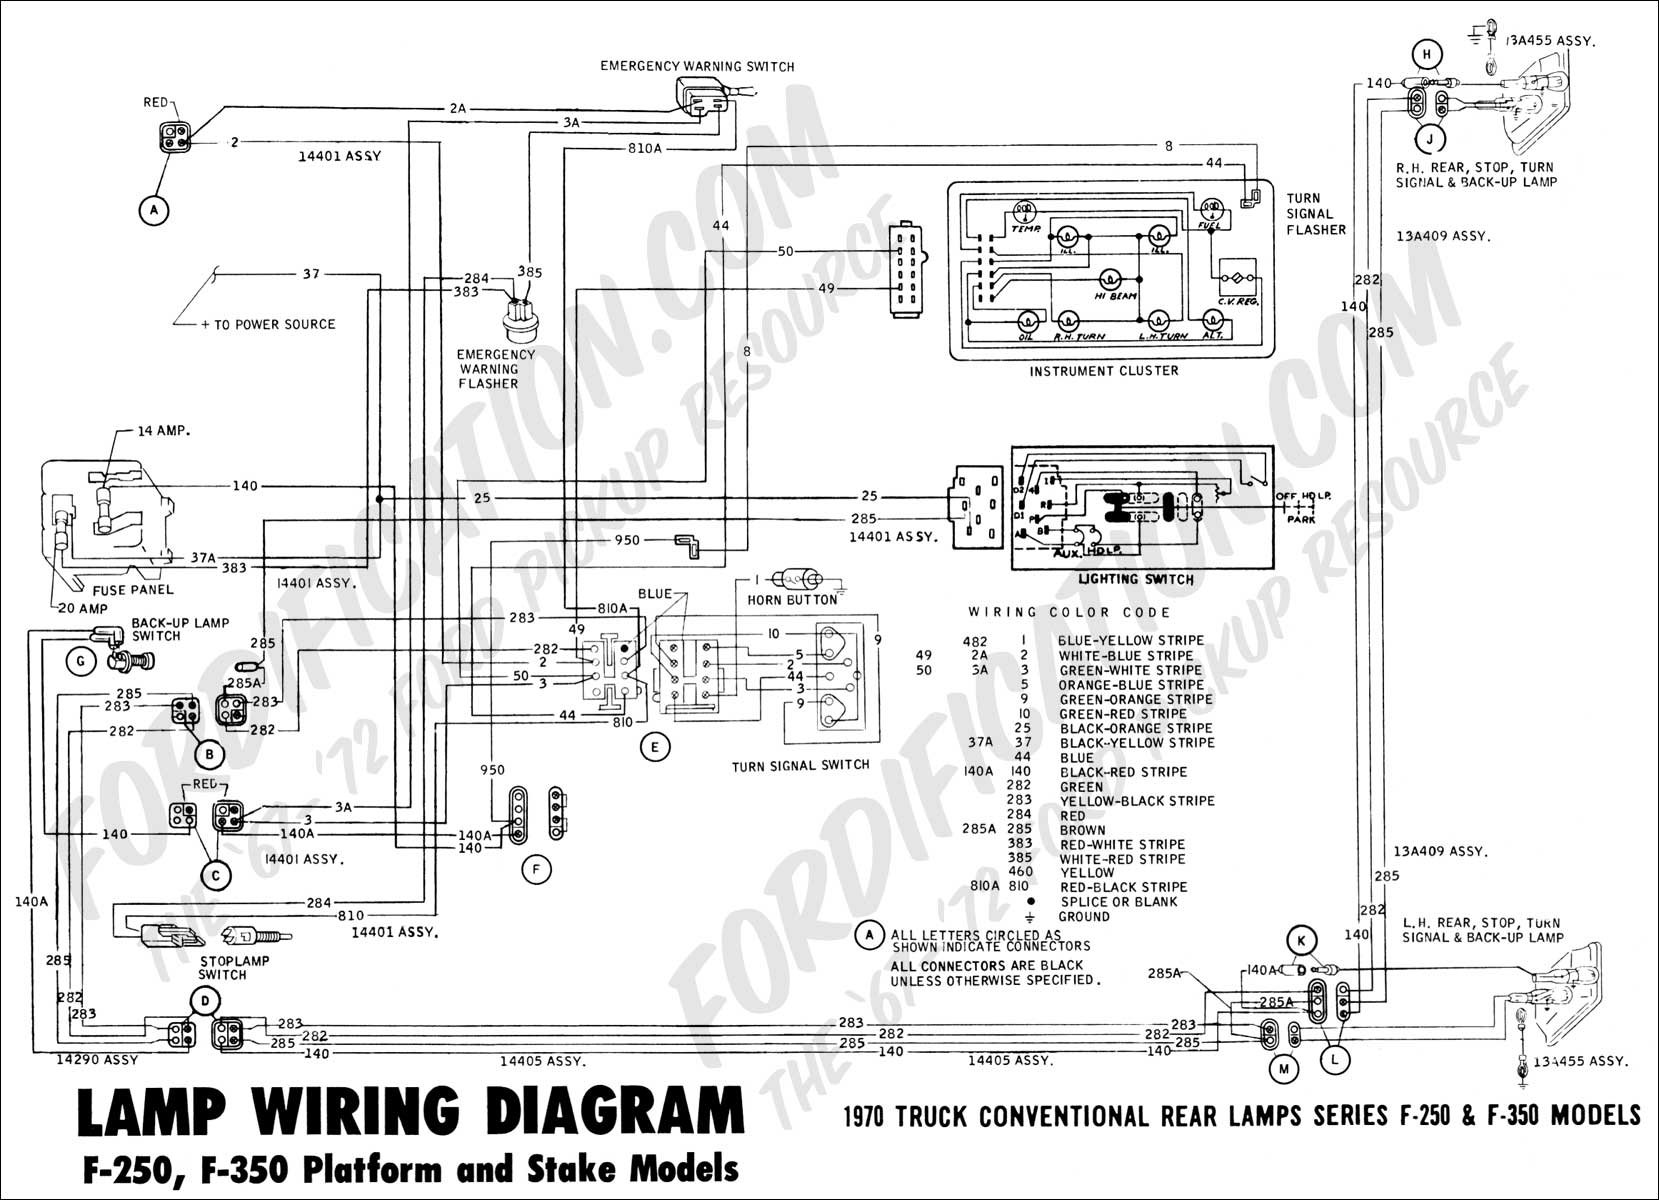 1994 f 250 dome light wiring diagram ford truck technical drawings and schematics - section h ... 2015 ford f 150 dome light wiring diagram #10